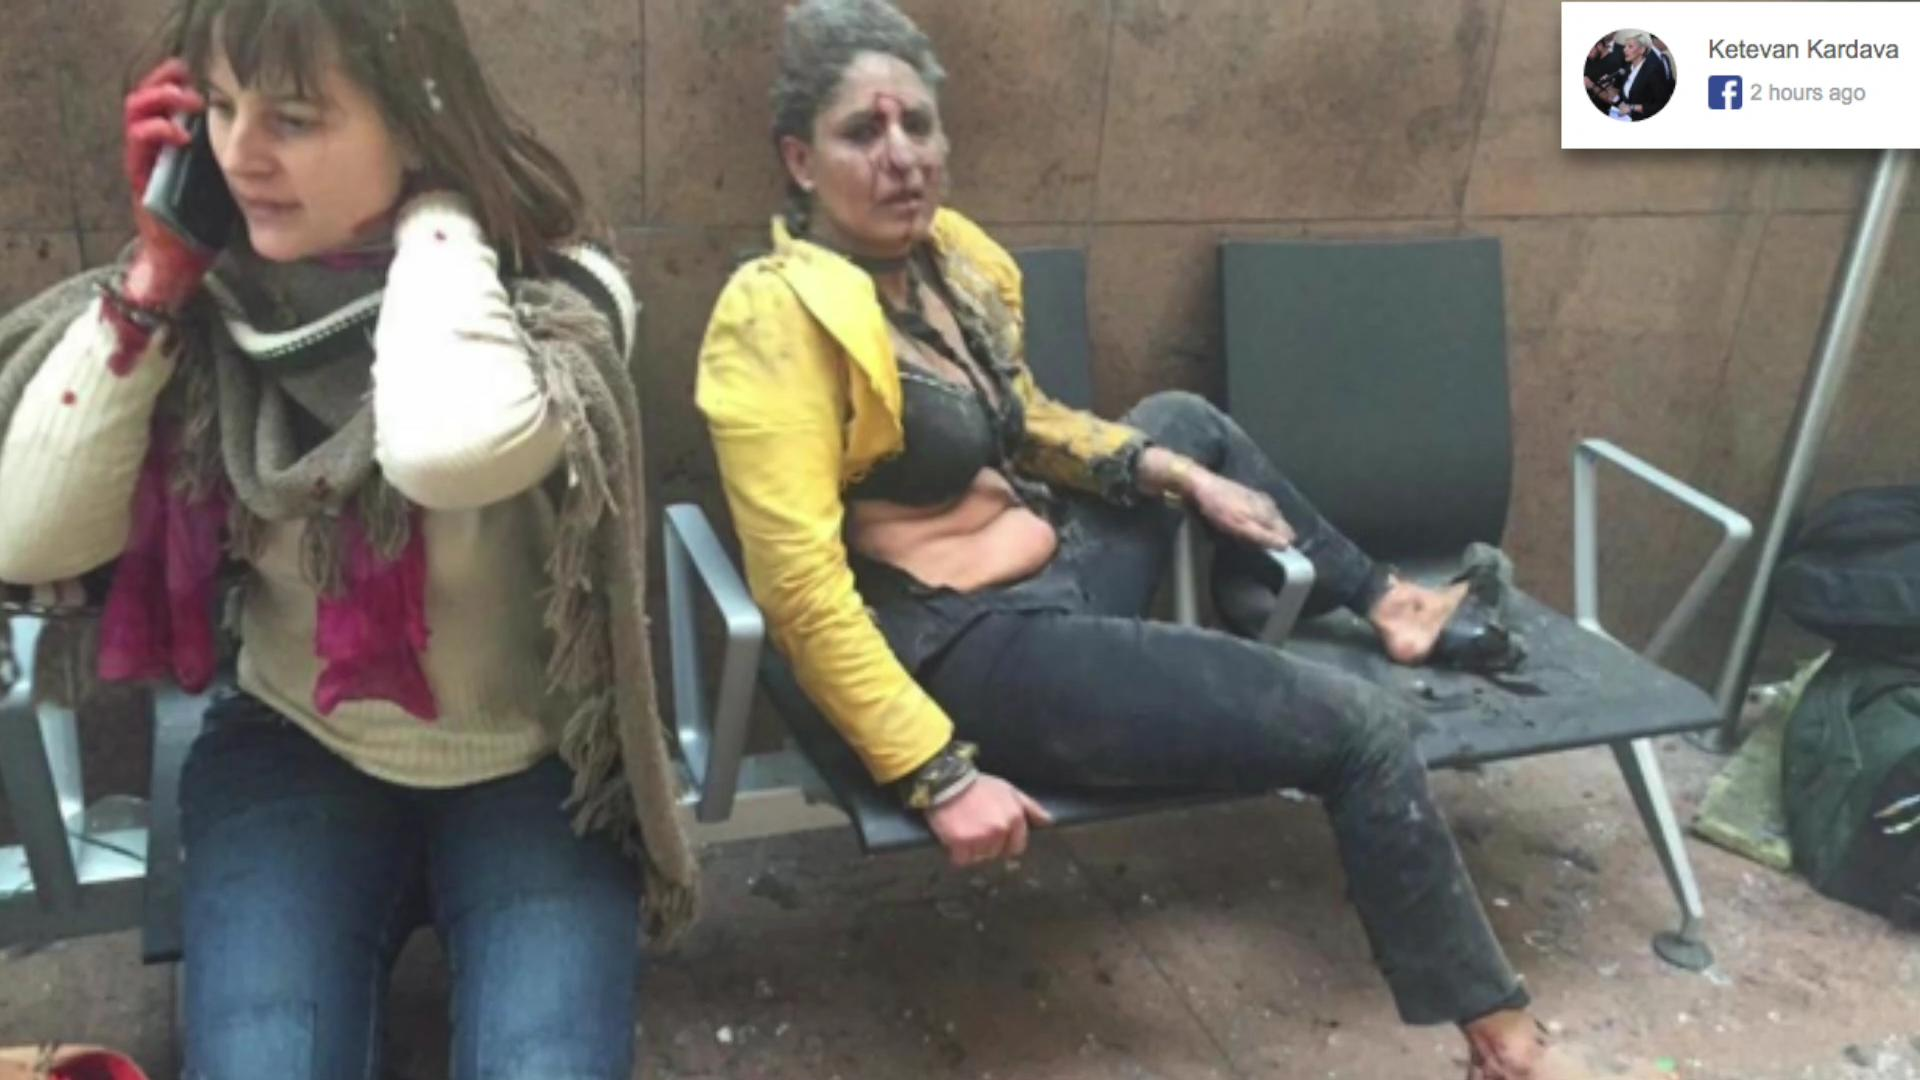 ISIS Responsible for Brussels Attacks, Supporters Praise Efforts